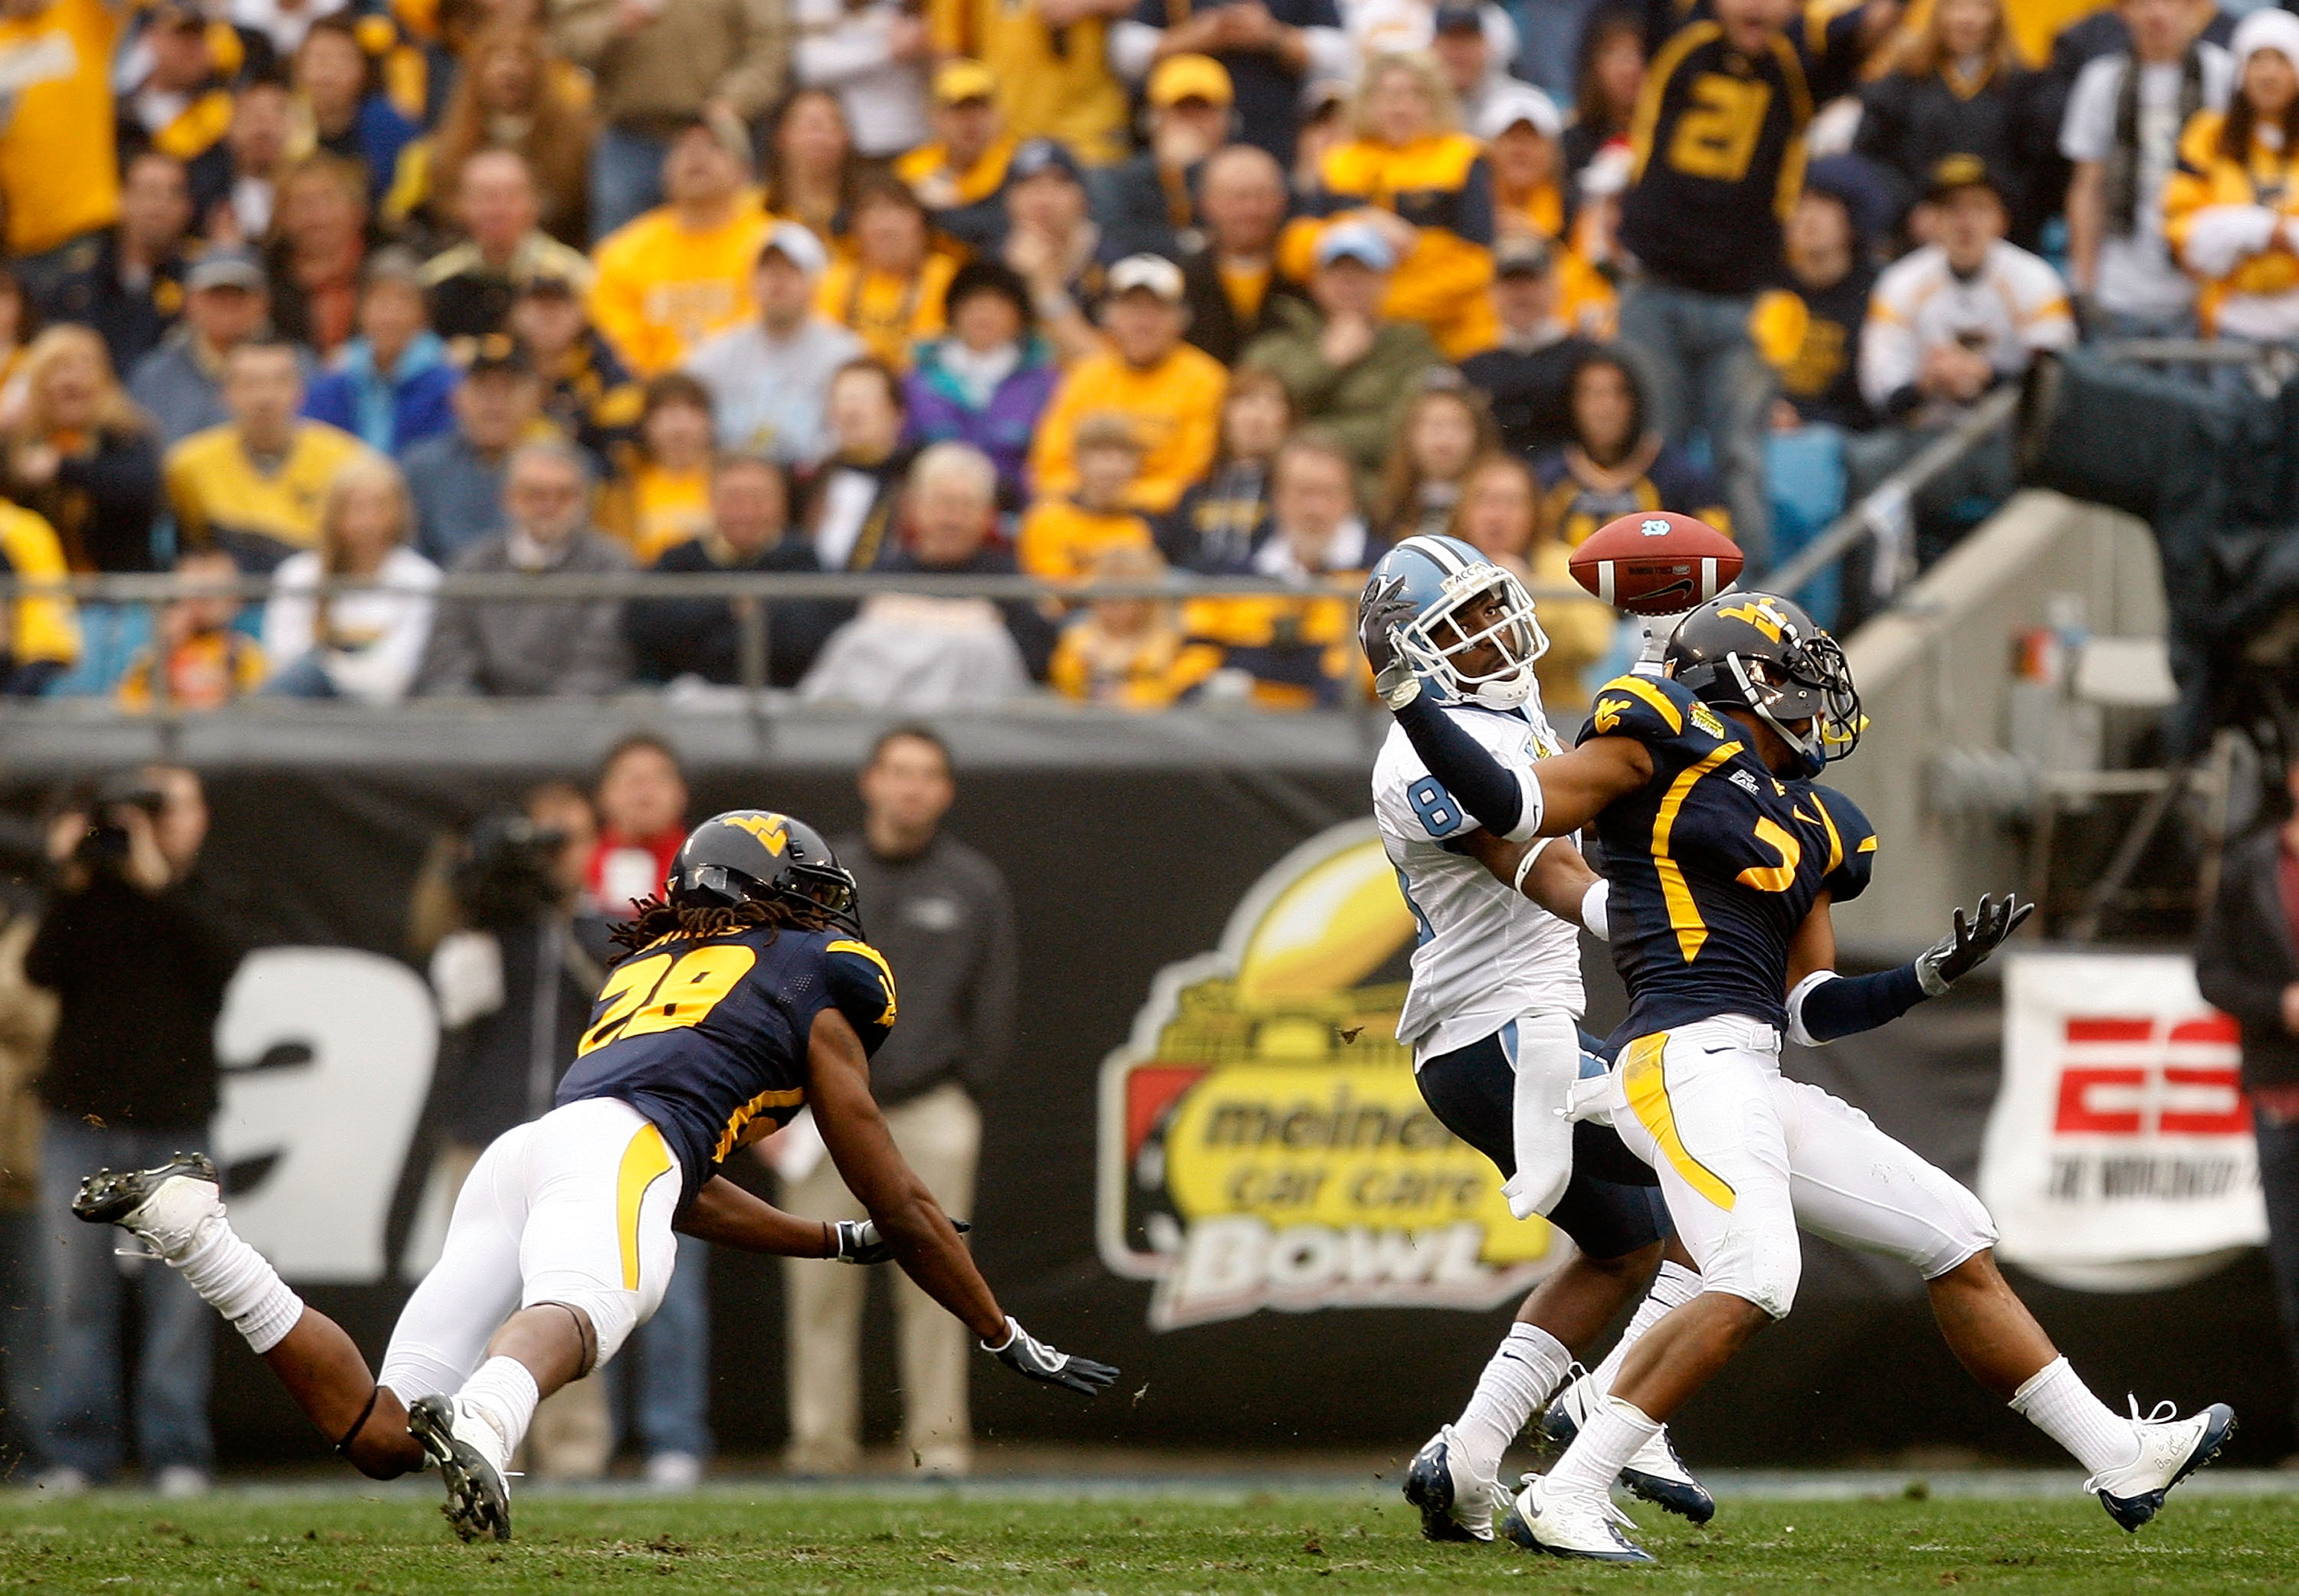 CHARLOTTE, NC - DECEMBER 27:  Hakeem Nicks #88 of the North Carolina Tar Heels catches a touchdown over Ellis Lankster #2 and teammate Robert Sands #28 of the West Virginia Mountaineers during the Meineke Car Care Bowl on December 27, 2008 at Bank of Amer